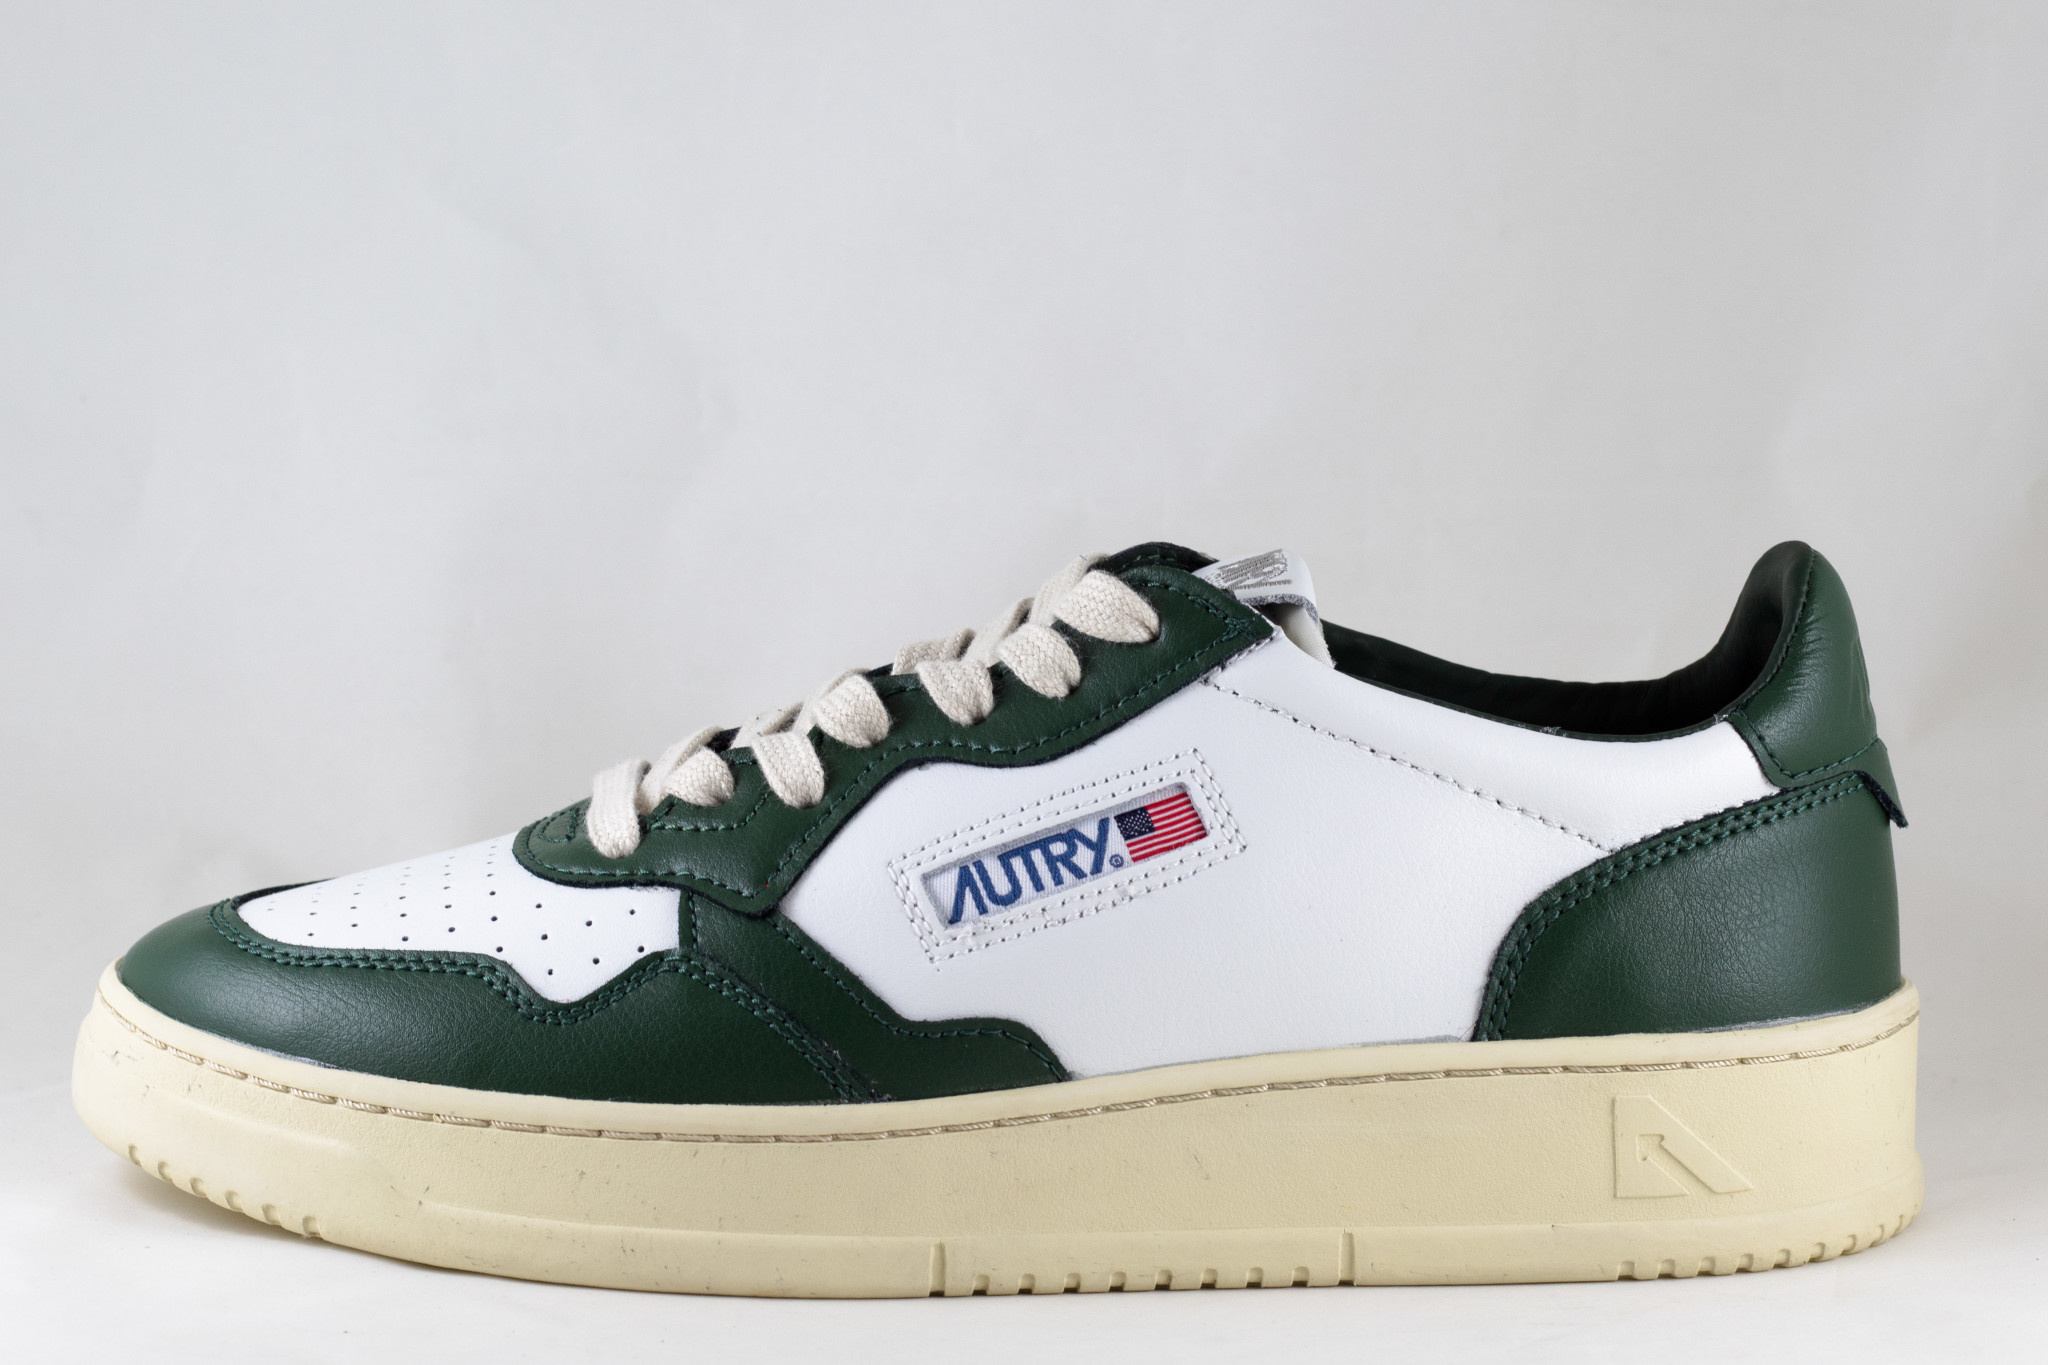 AUTRY LN 21 LOW MAN LEATHER White/ Dark Green